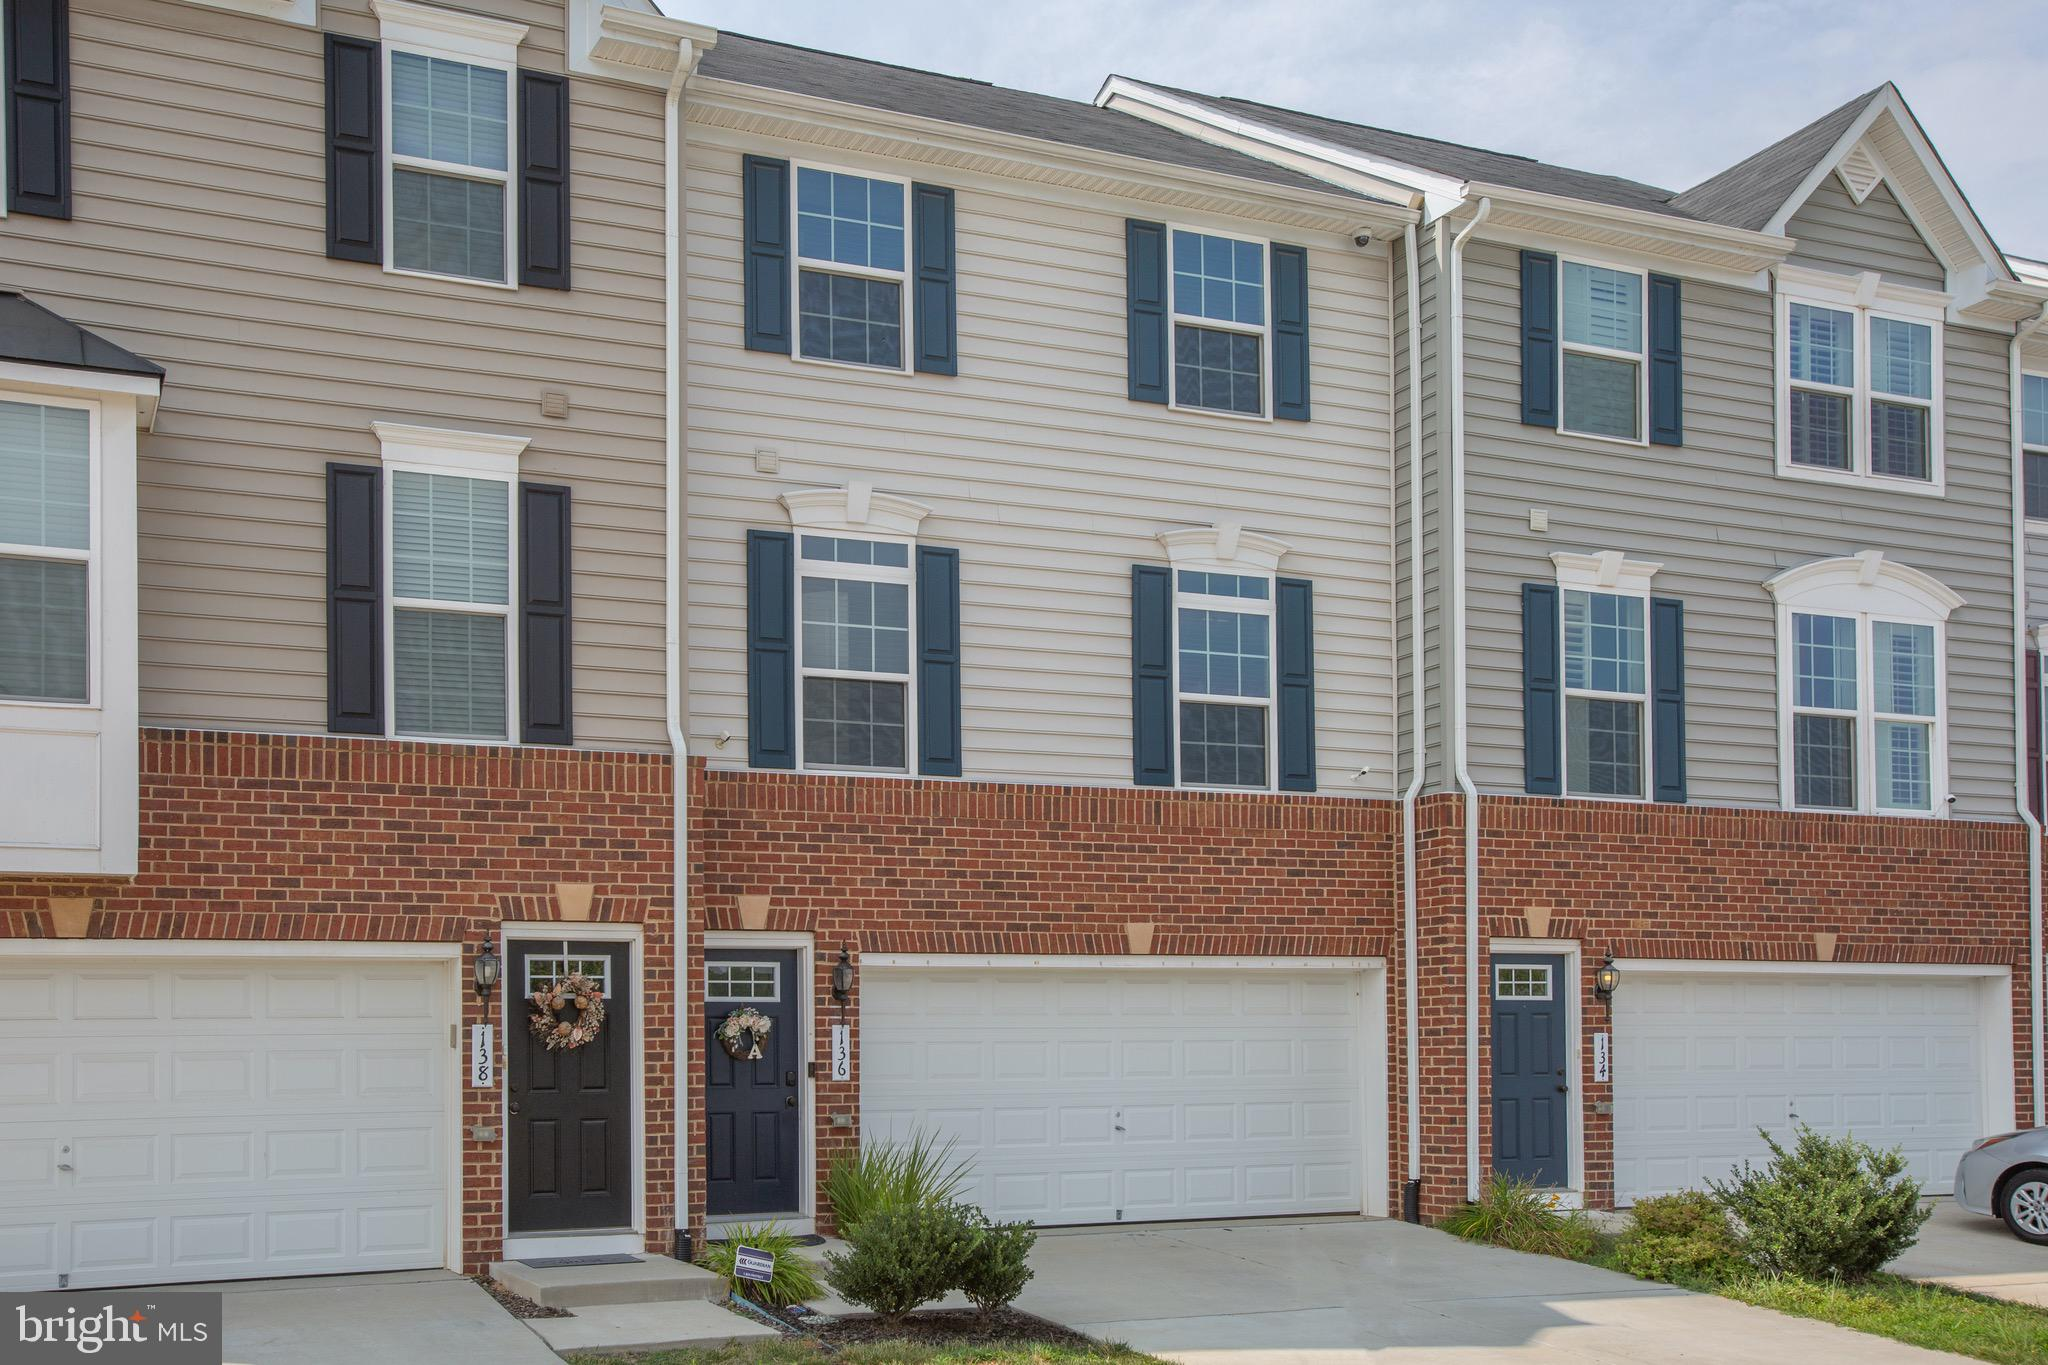 Welcome Home to this Gorgeous 3 Bedroom 3.5 Bath Townhome. You will Love the Main Level with a Large